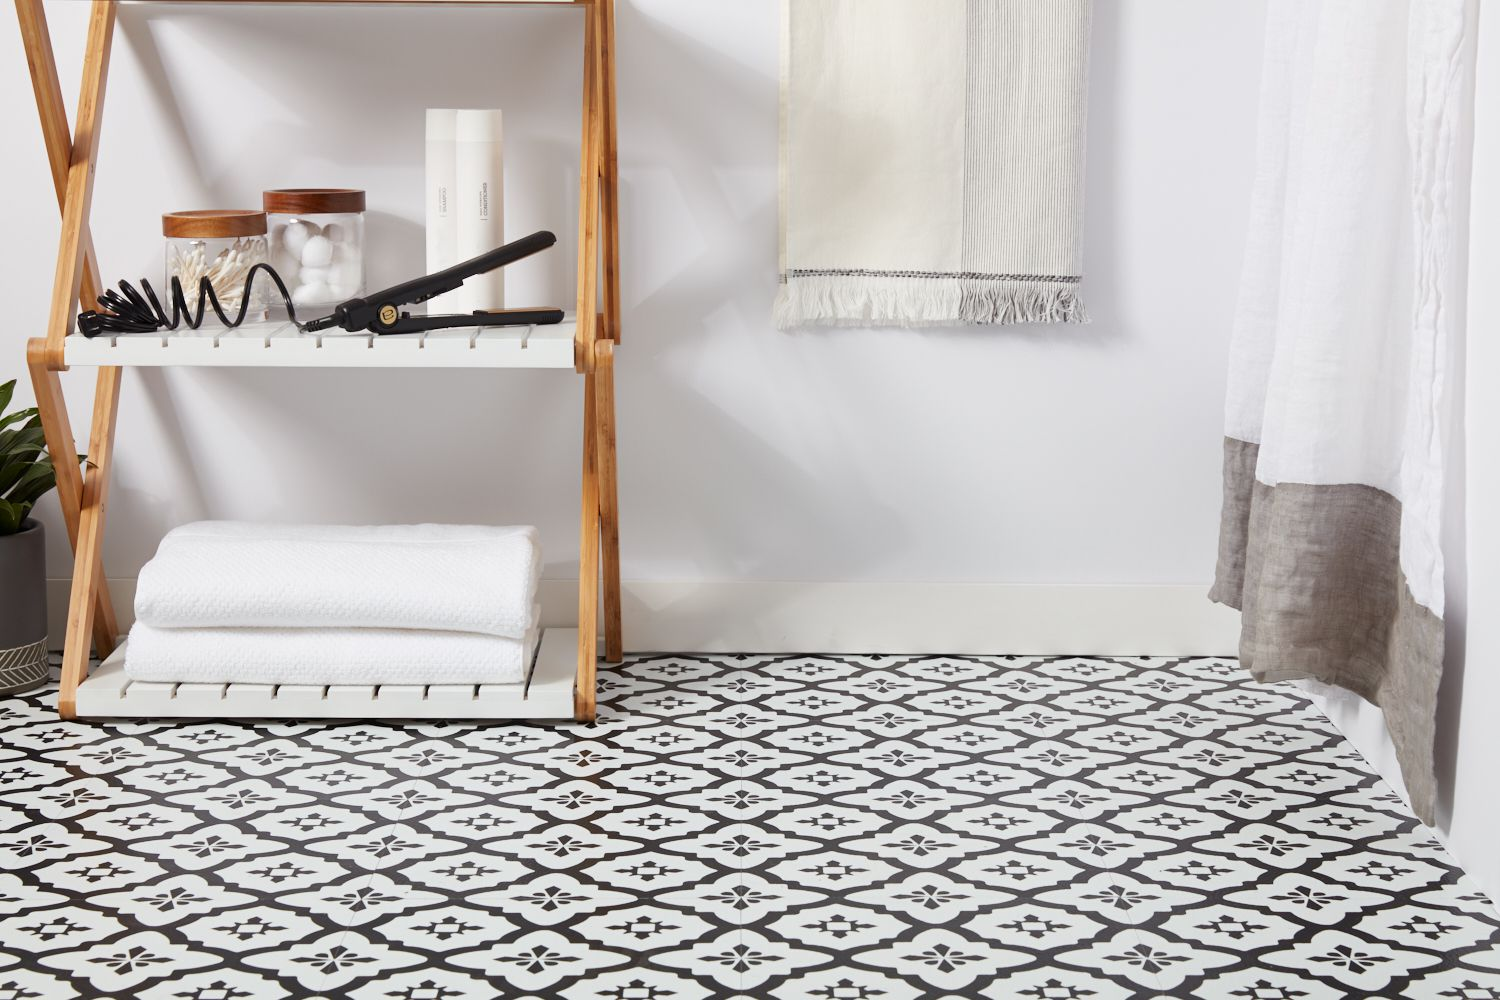 Self Adhesive Vinyl Floor Tiles Pros And Cons